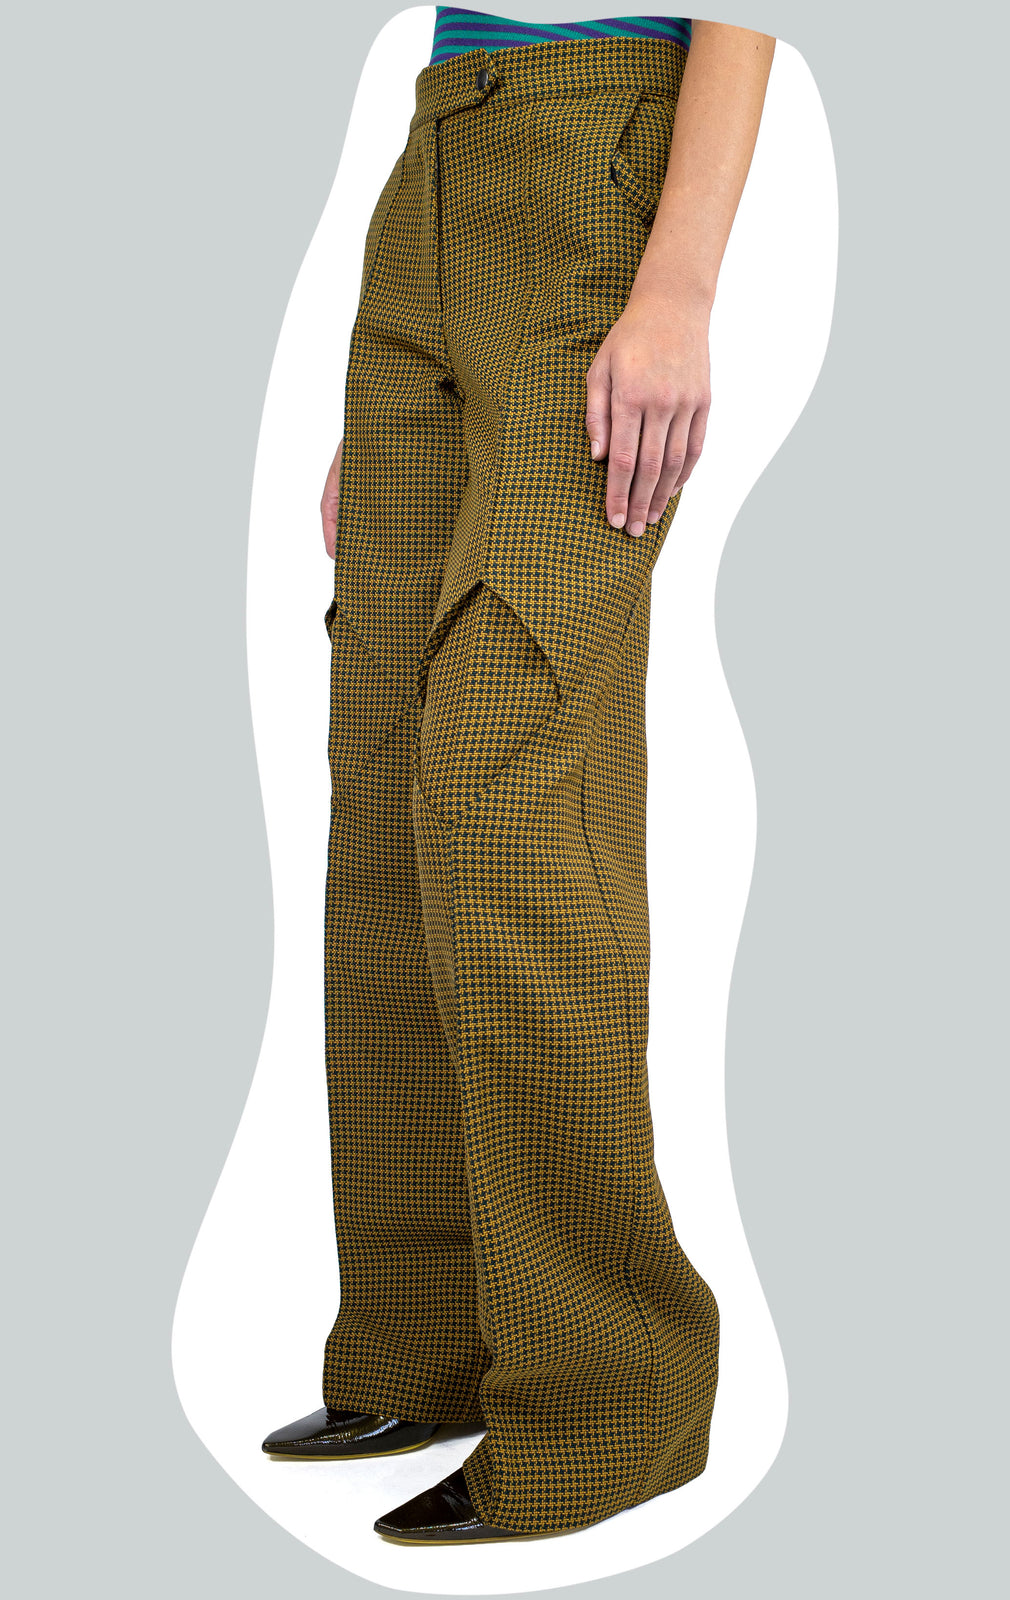 KIKO KOSTADINOV DARTED DIAMOND TROUSER GINGER HUNDSTOOTH AW20